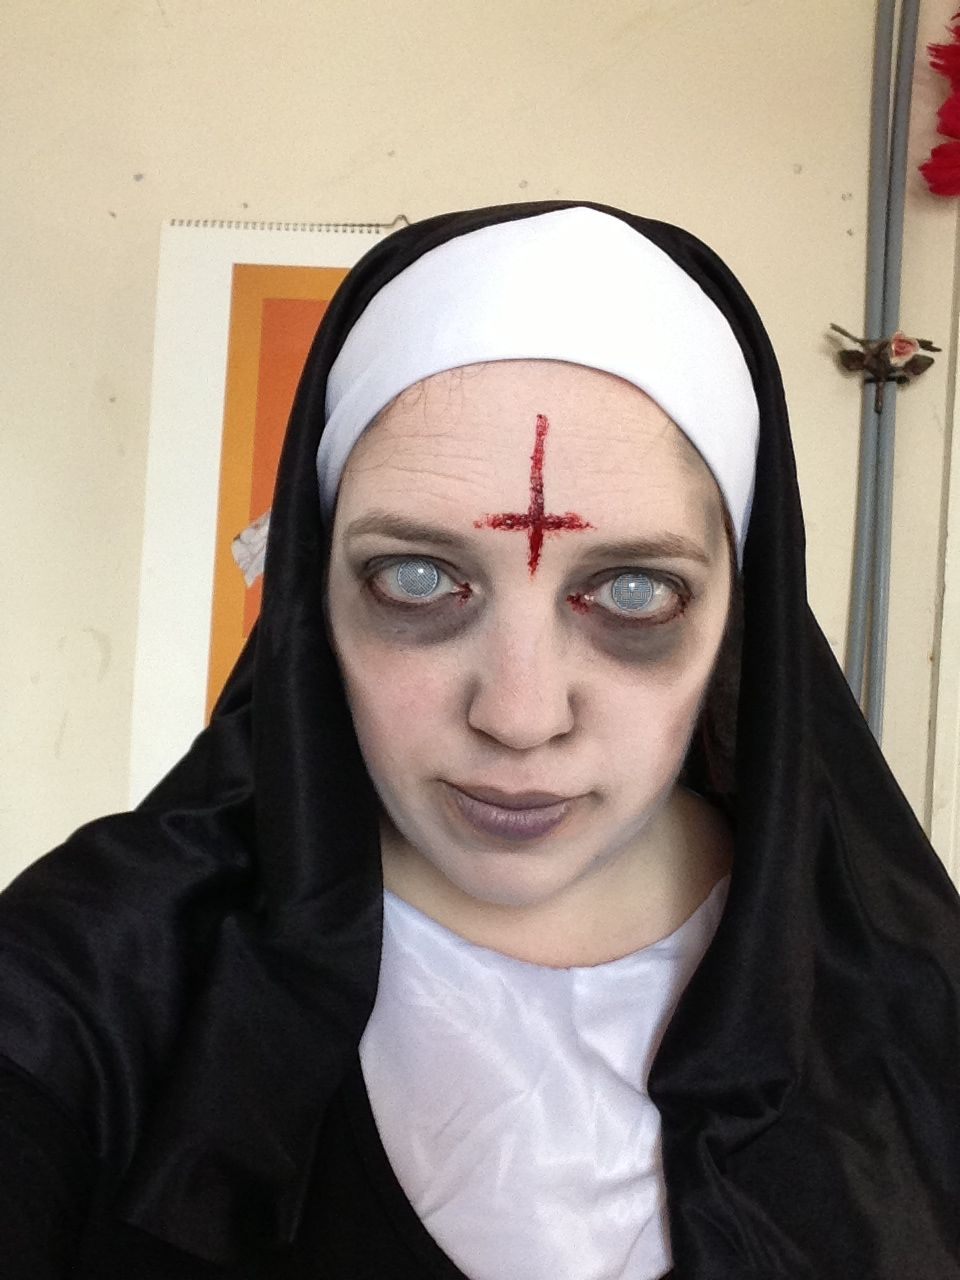 zombie nun make up - Google Search | Costumes and makeup ...